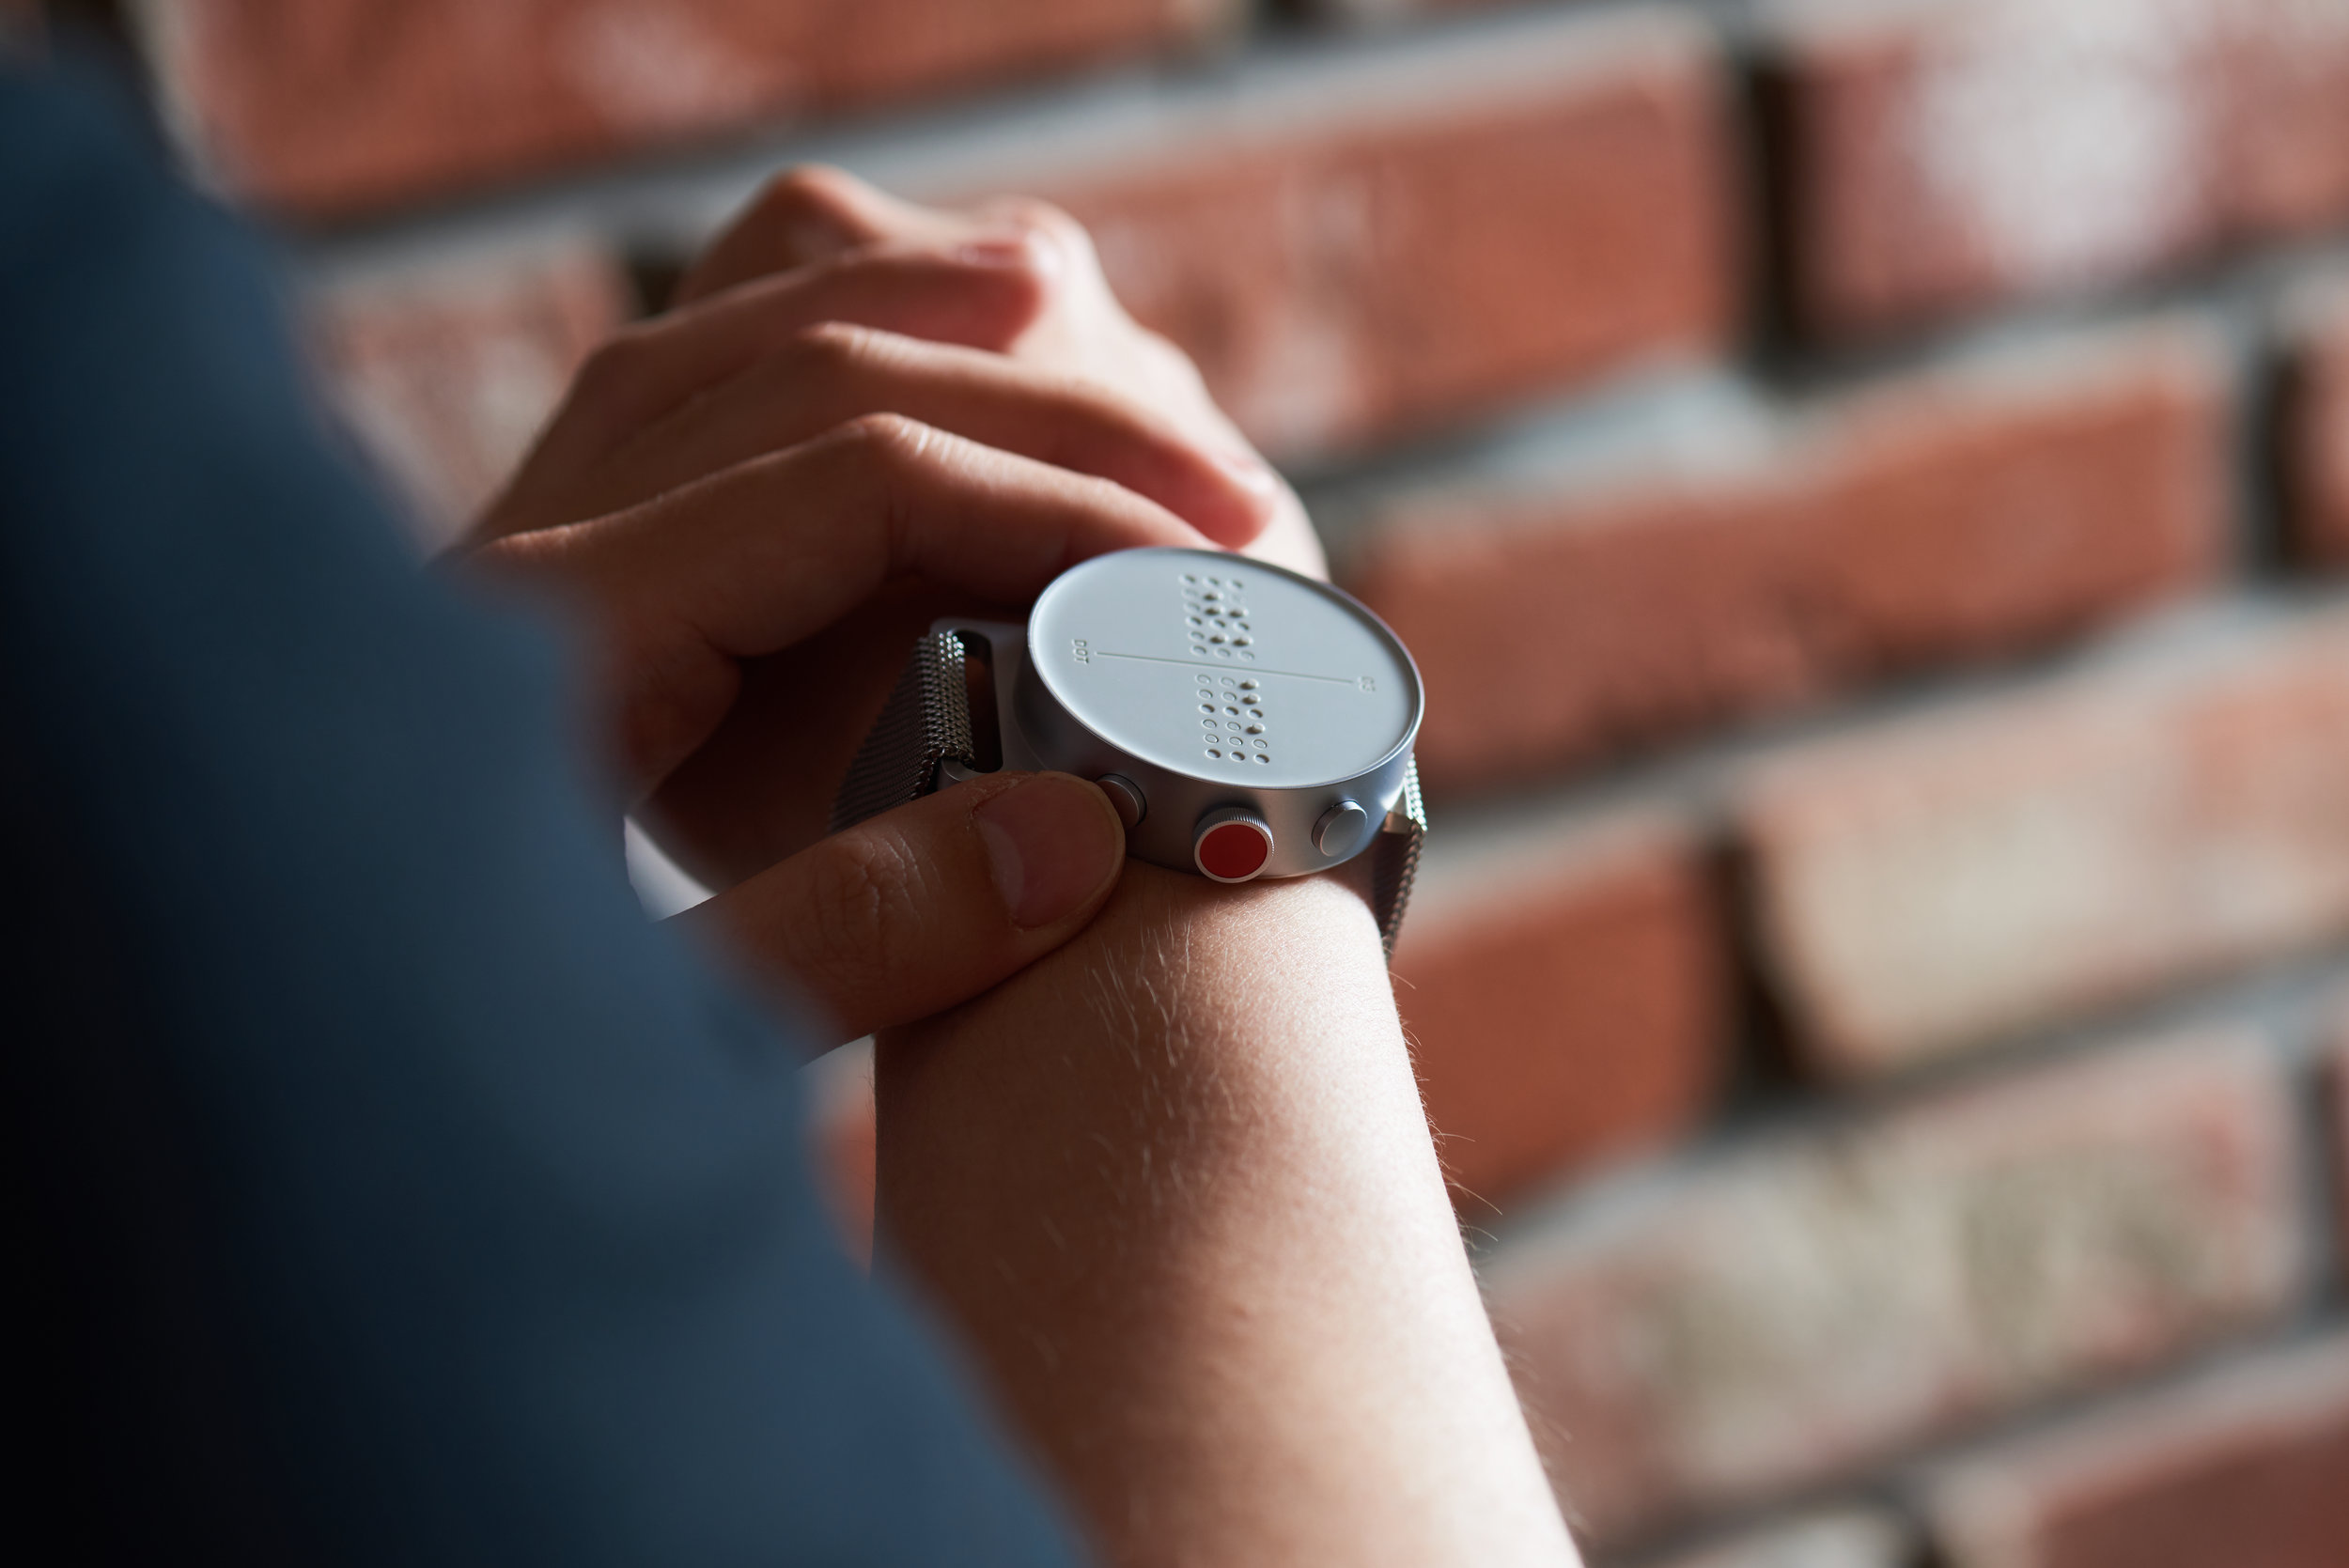 A photo of a person wearing a Braille smartwatch while holding the sides of the watch lightly.